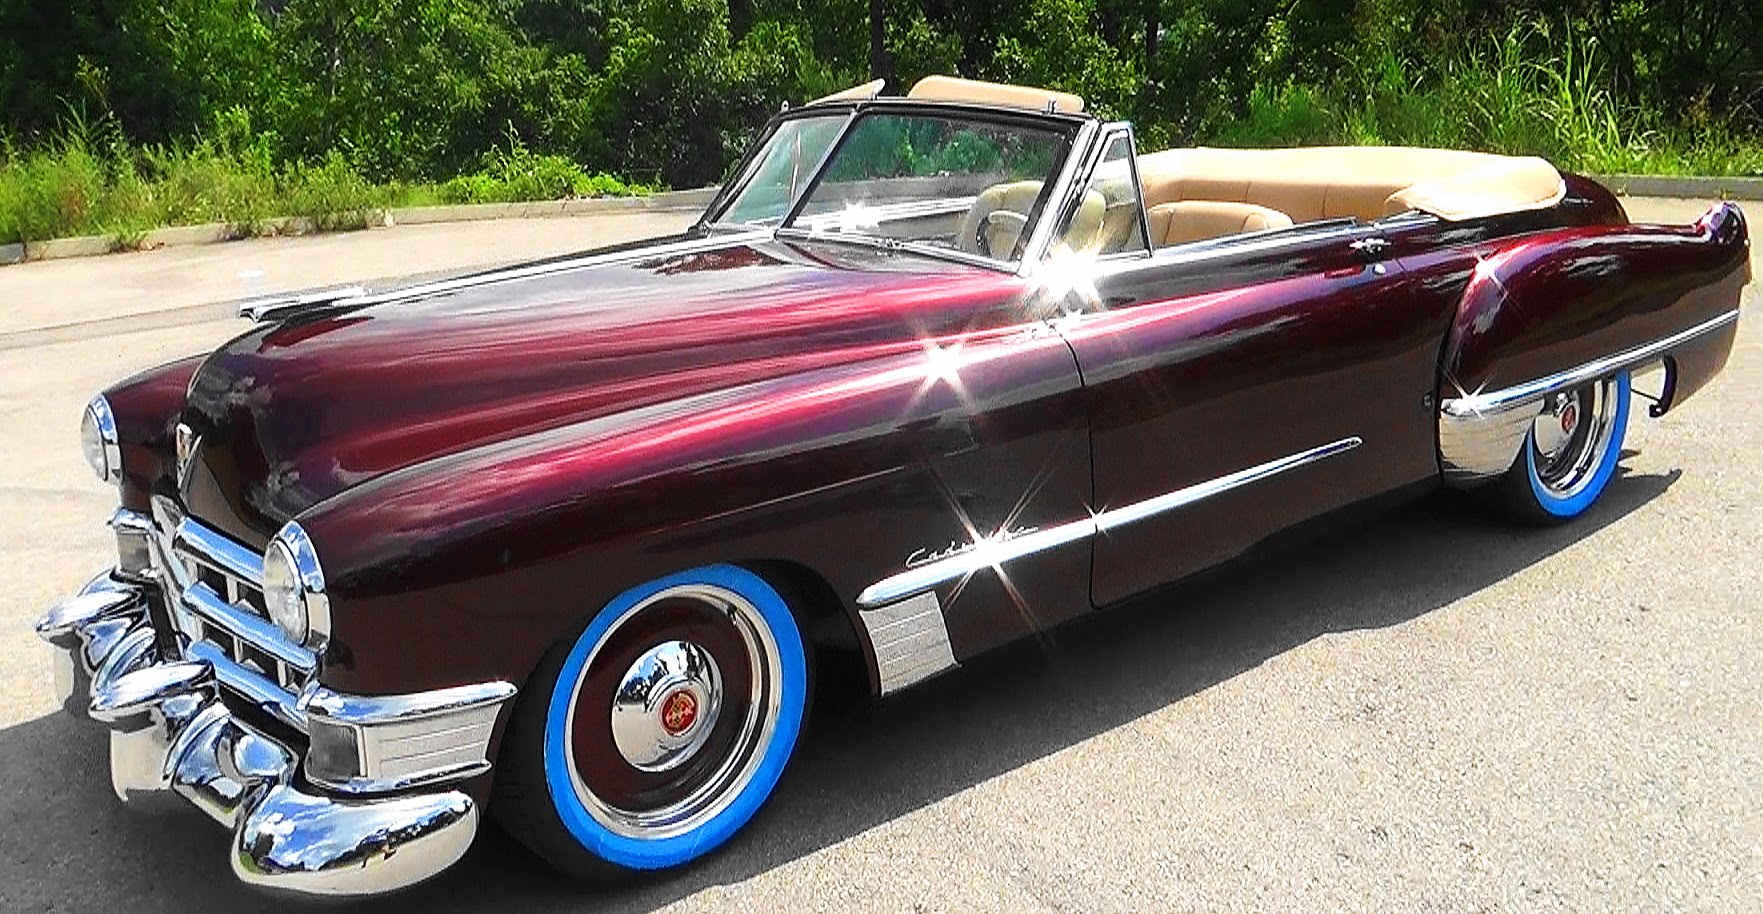 49 cadillac convertible street rod scottiedtv coolest cars on the web. Black Bedroom Furniture Sets. Home Design Ideas